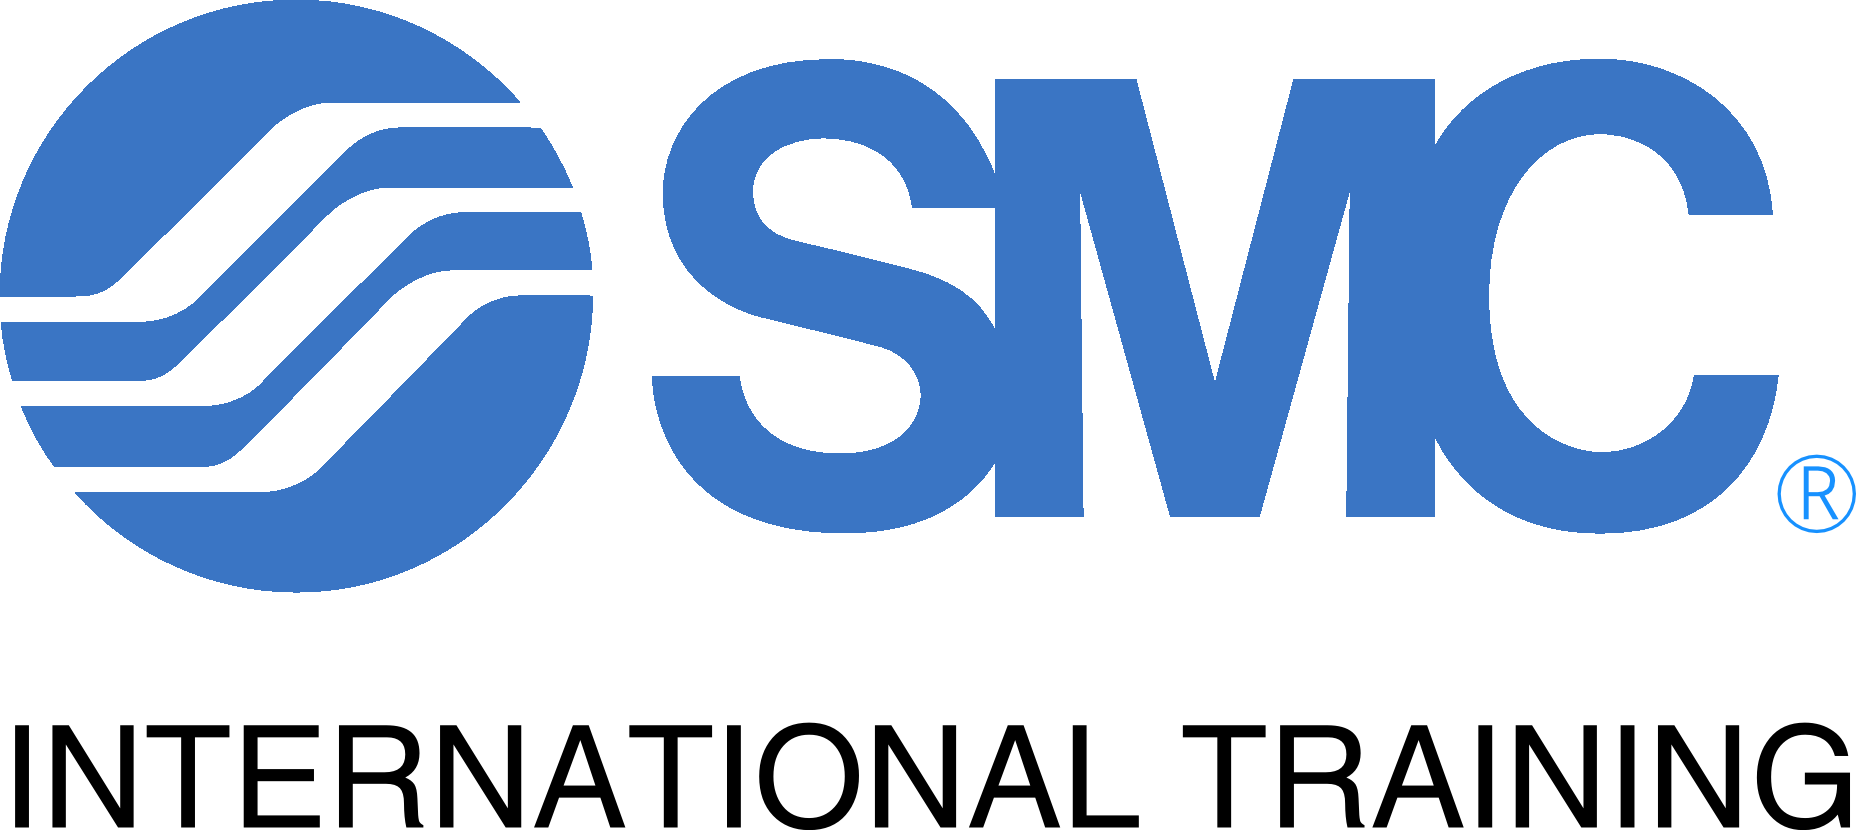 SMC International Training – La división didáctica de SMC Corporation